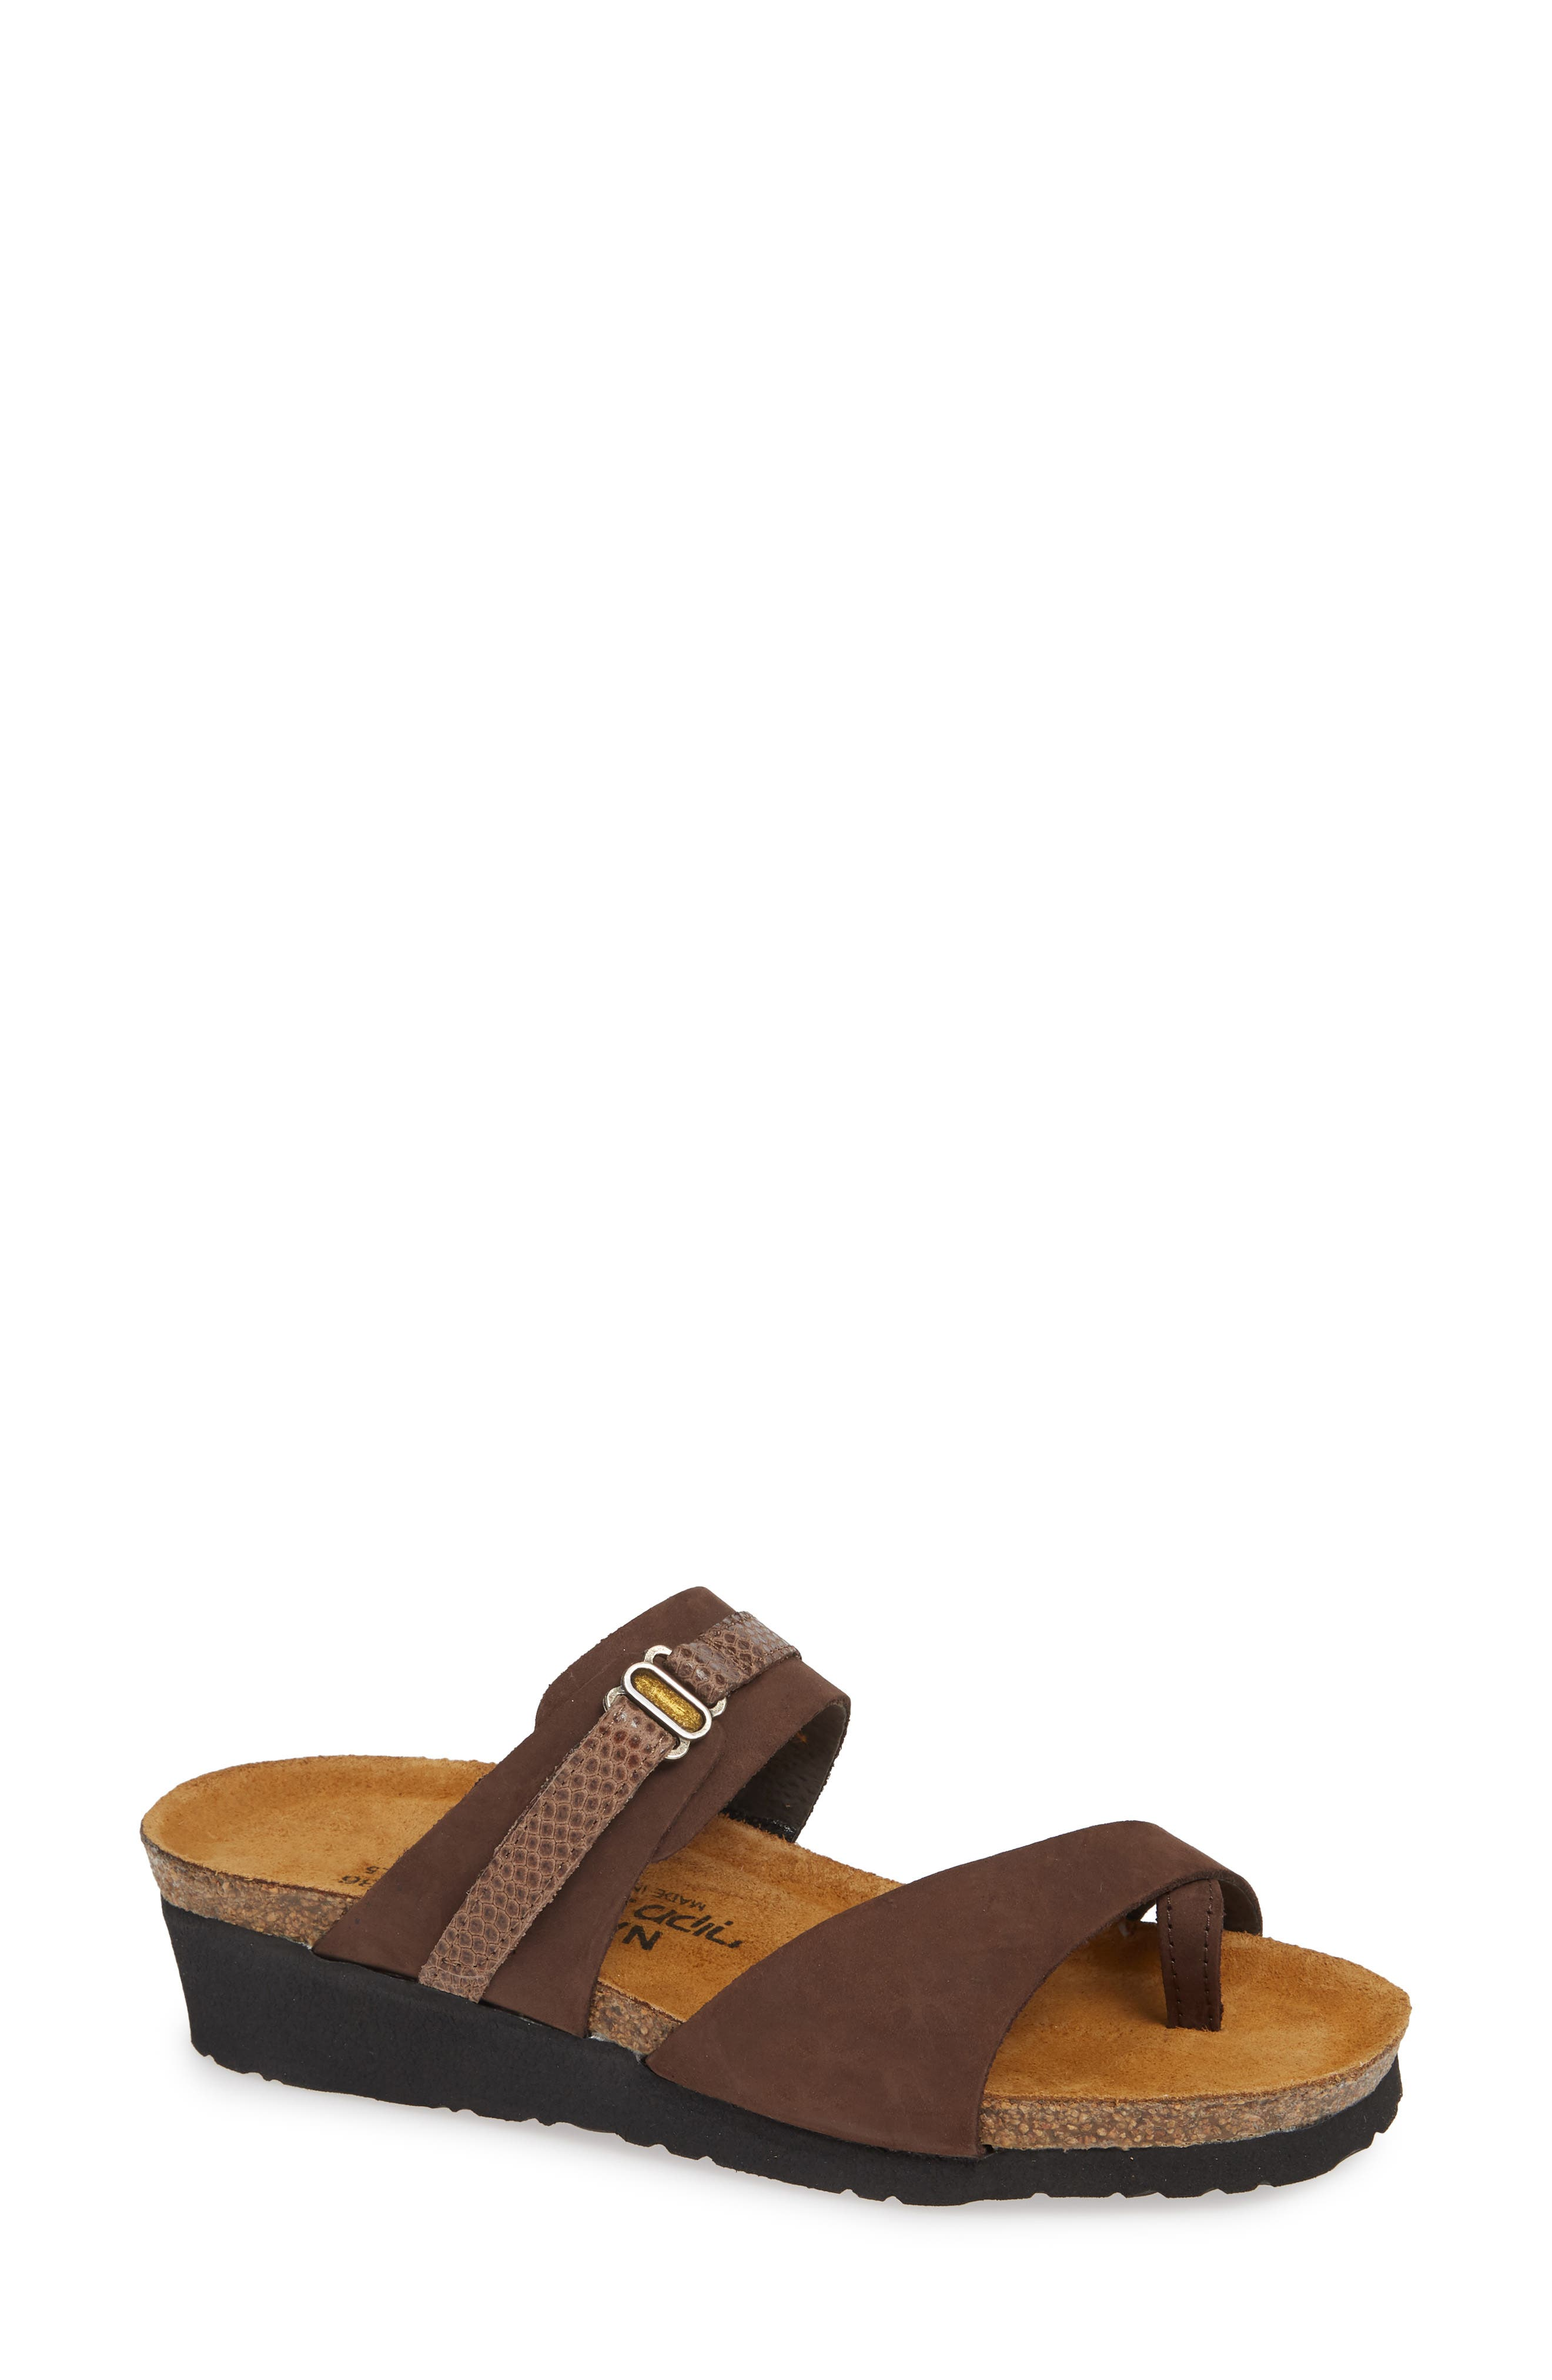 NAOT, Jessica Sandal, Main thumbnail 1, color, COFFEE BEAN NUBUCK LEATHER